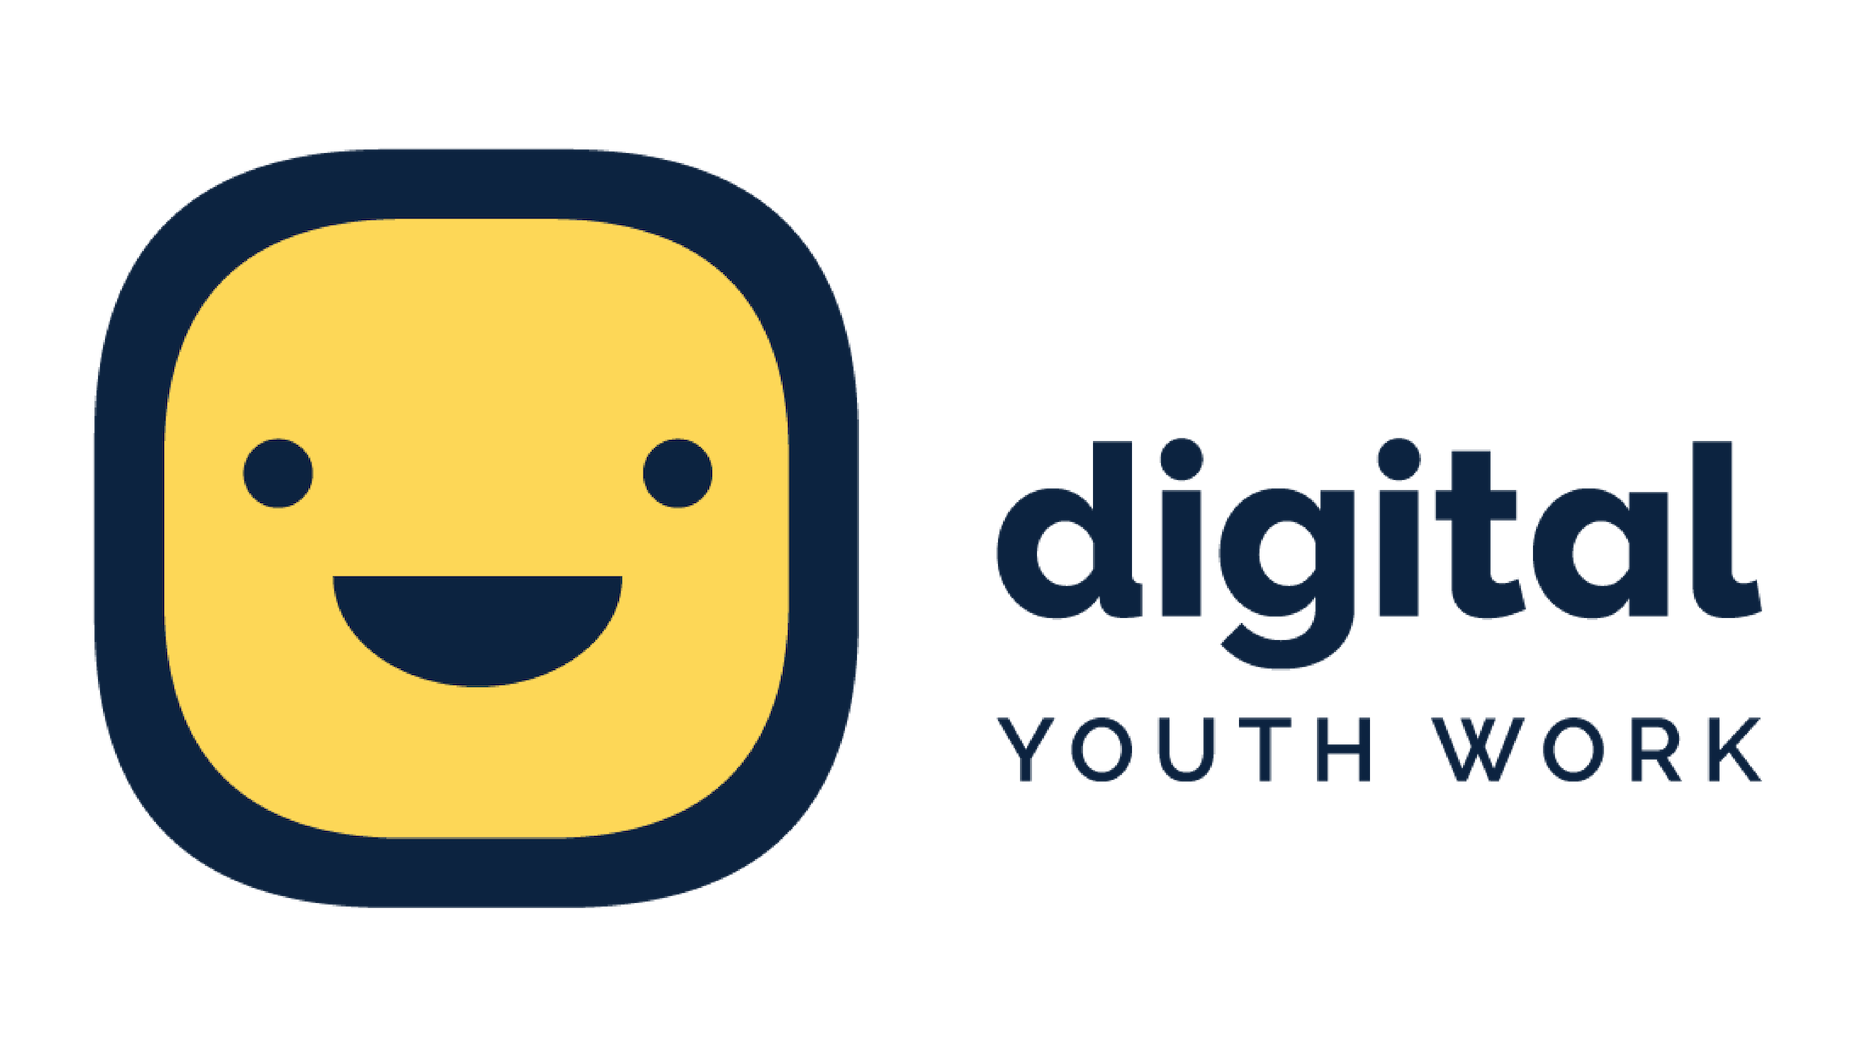 Digital youth work logo